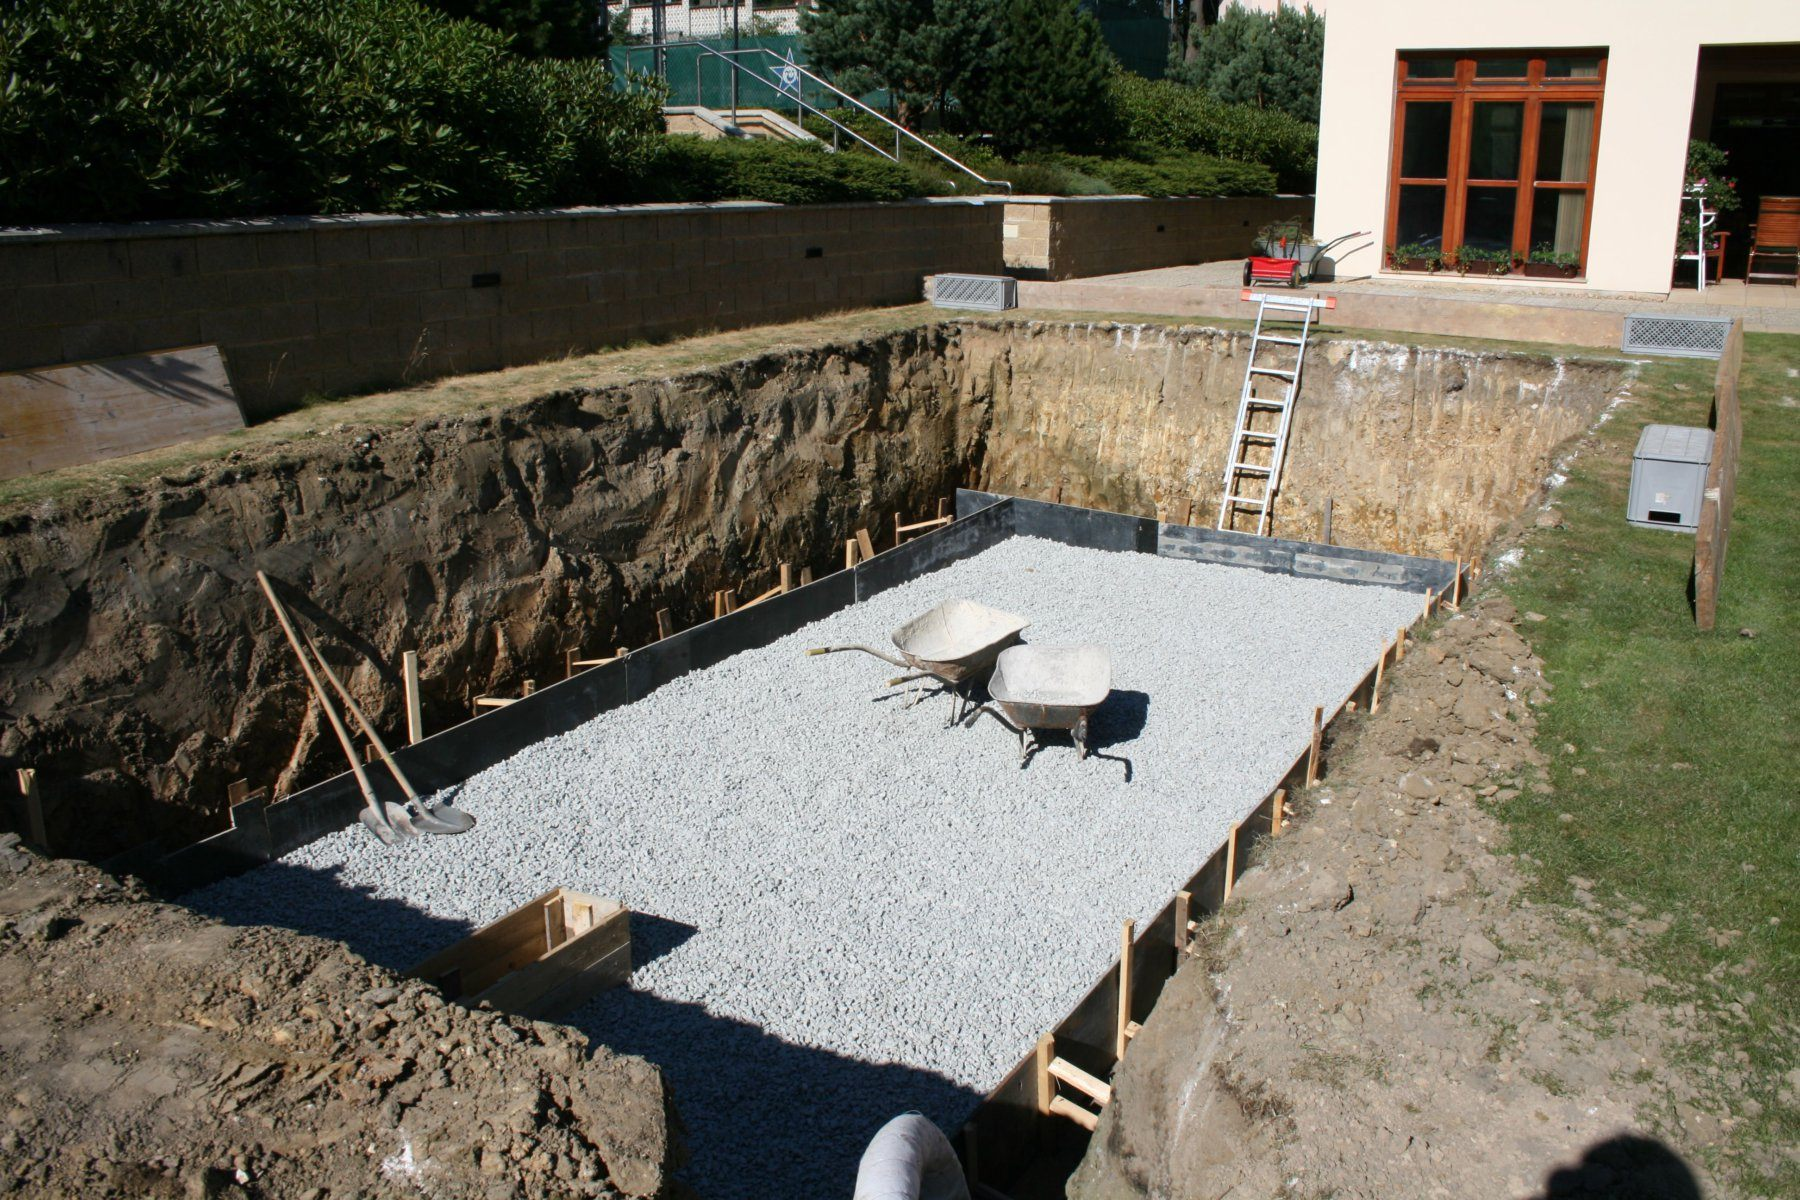 Ceramic pool installation – gravel bed